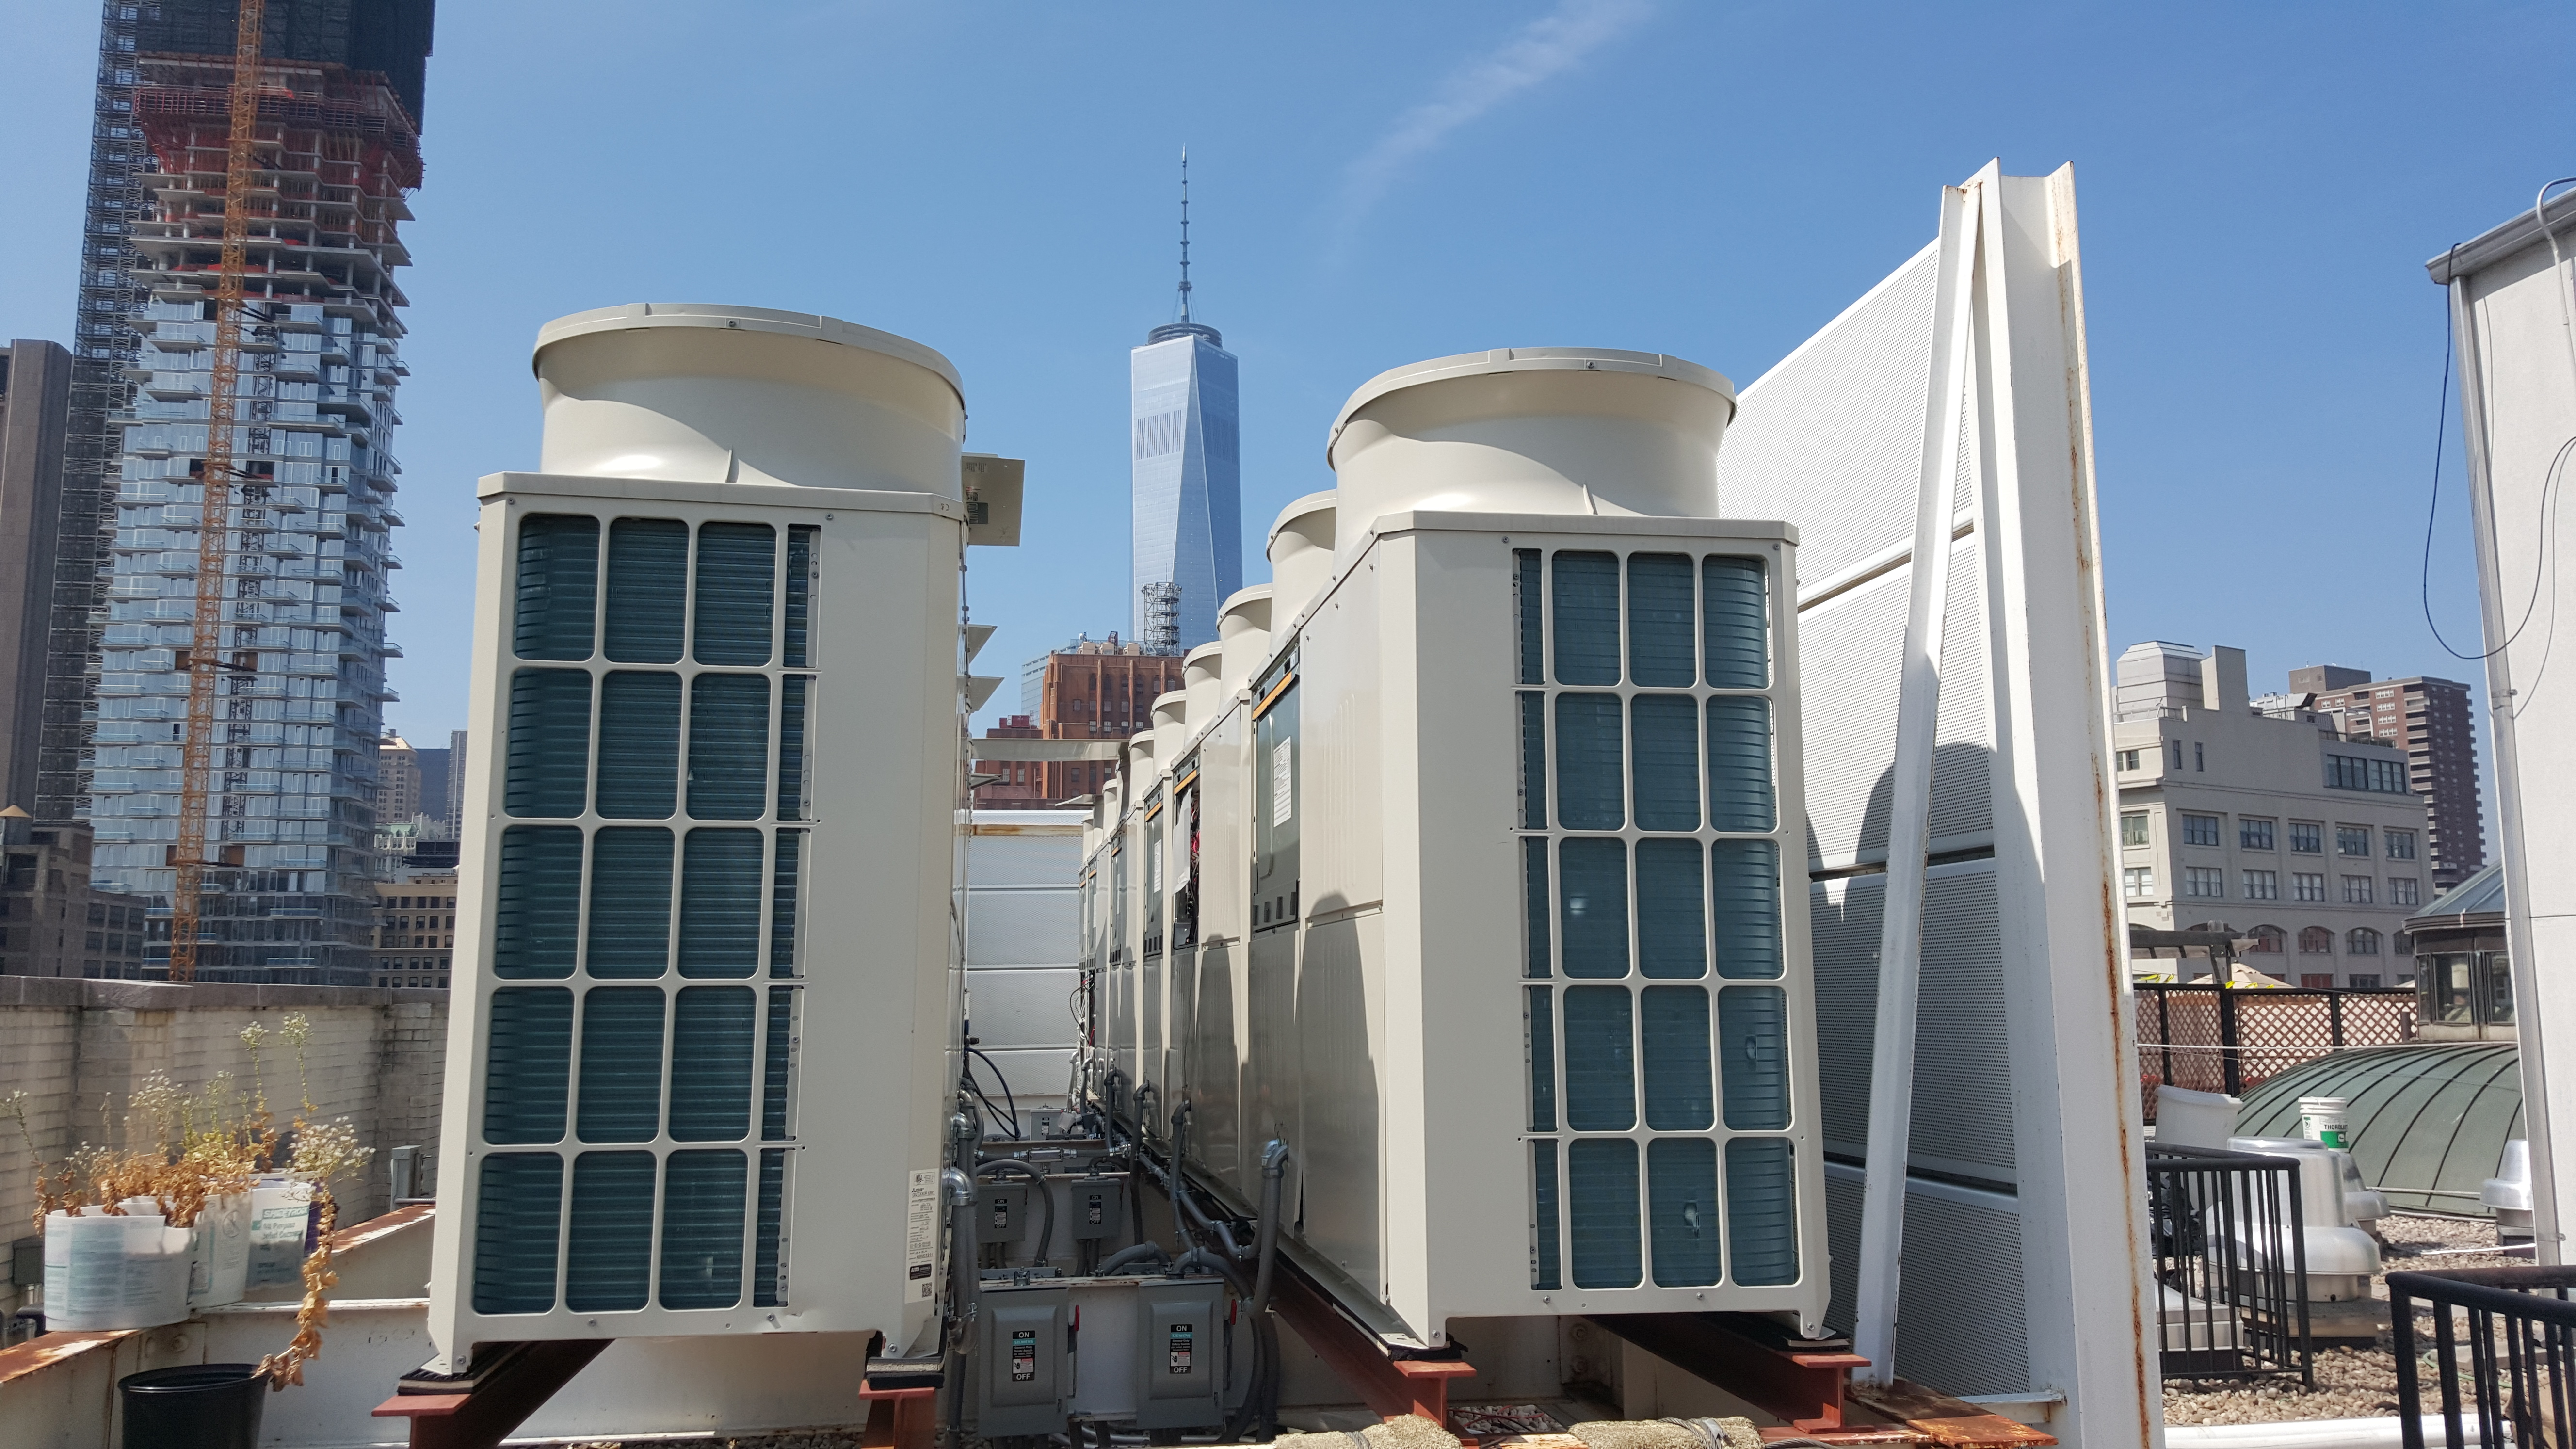 Mitsubishi City-Multi heat pumps on the roof of 260 West Broadway with the Freedom Tower in the background